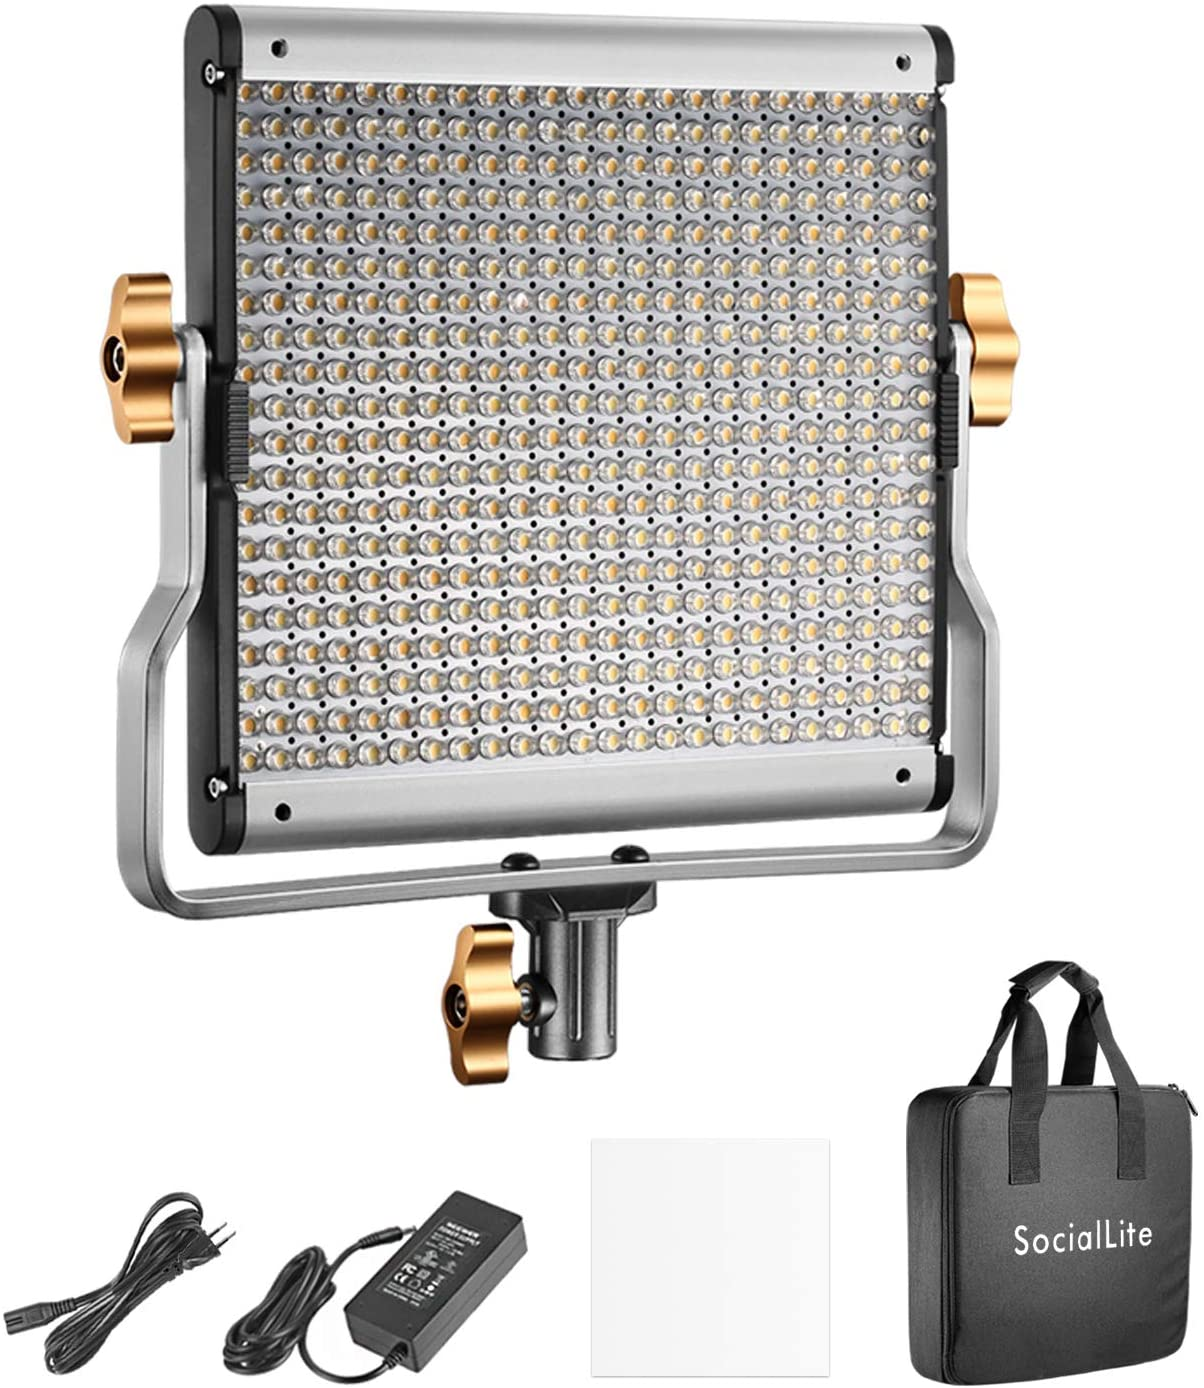 Luz de vídeo LED bicolor regulável SocialLite 480 Leds 3200K-5600K CRI 96 - KIT